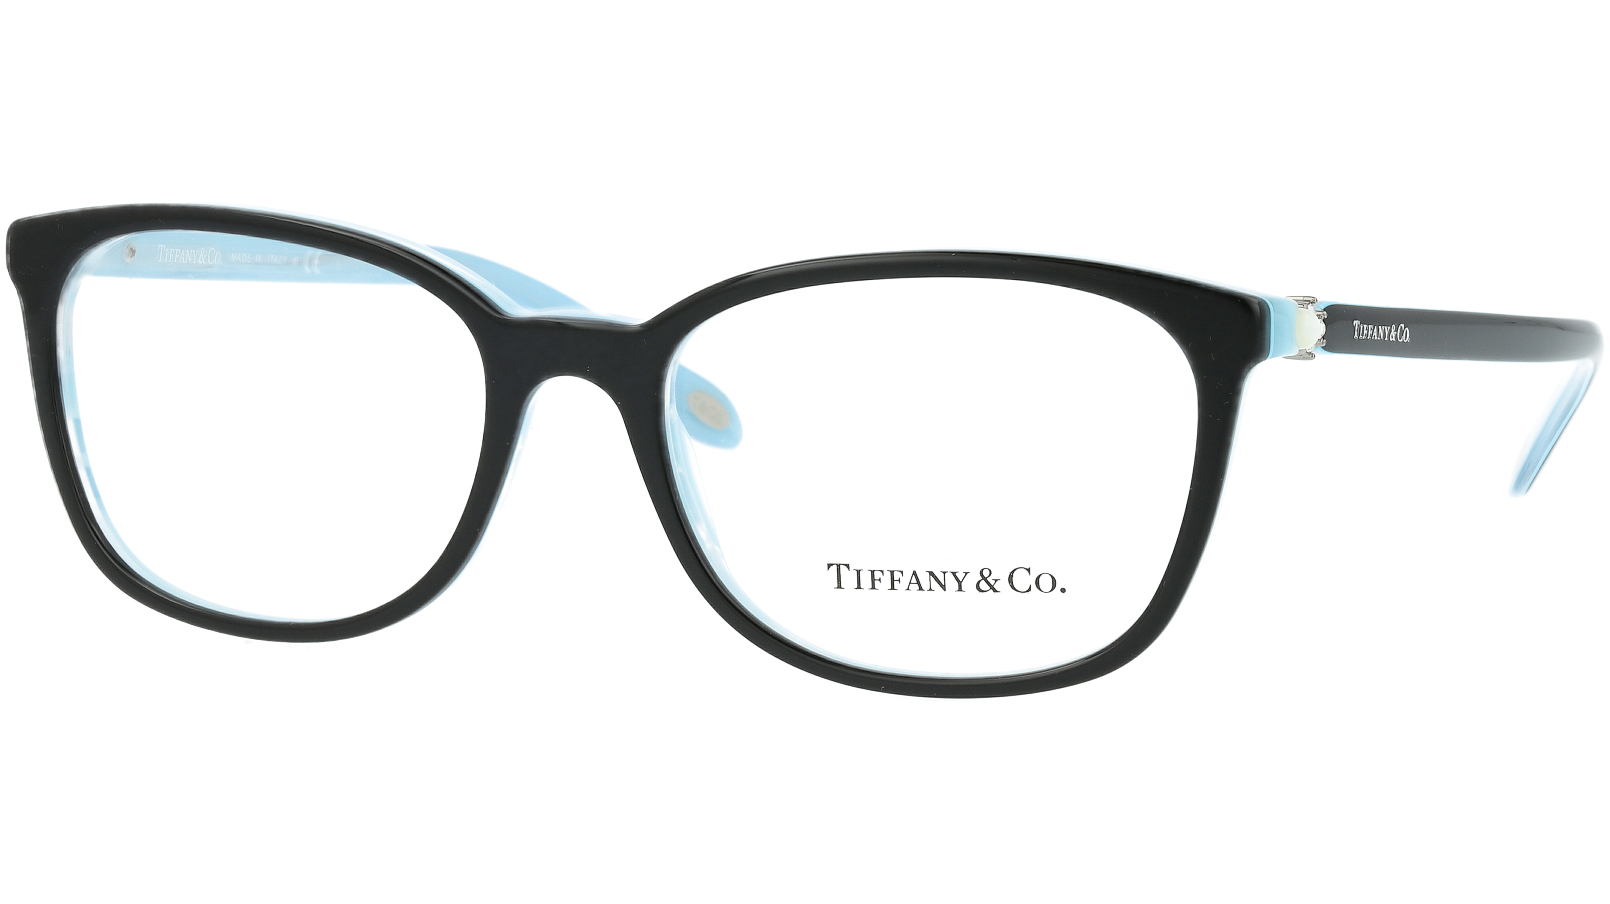 TIFFANY TF2109HB 8193 53 BLACK Glasses